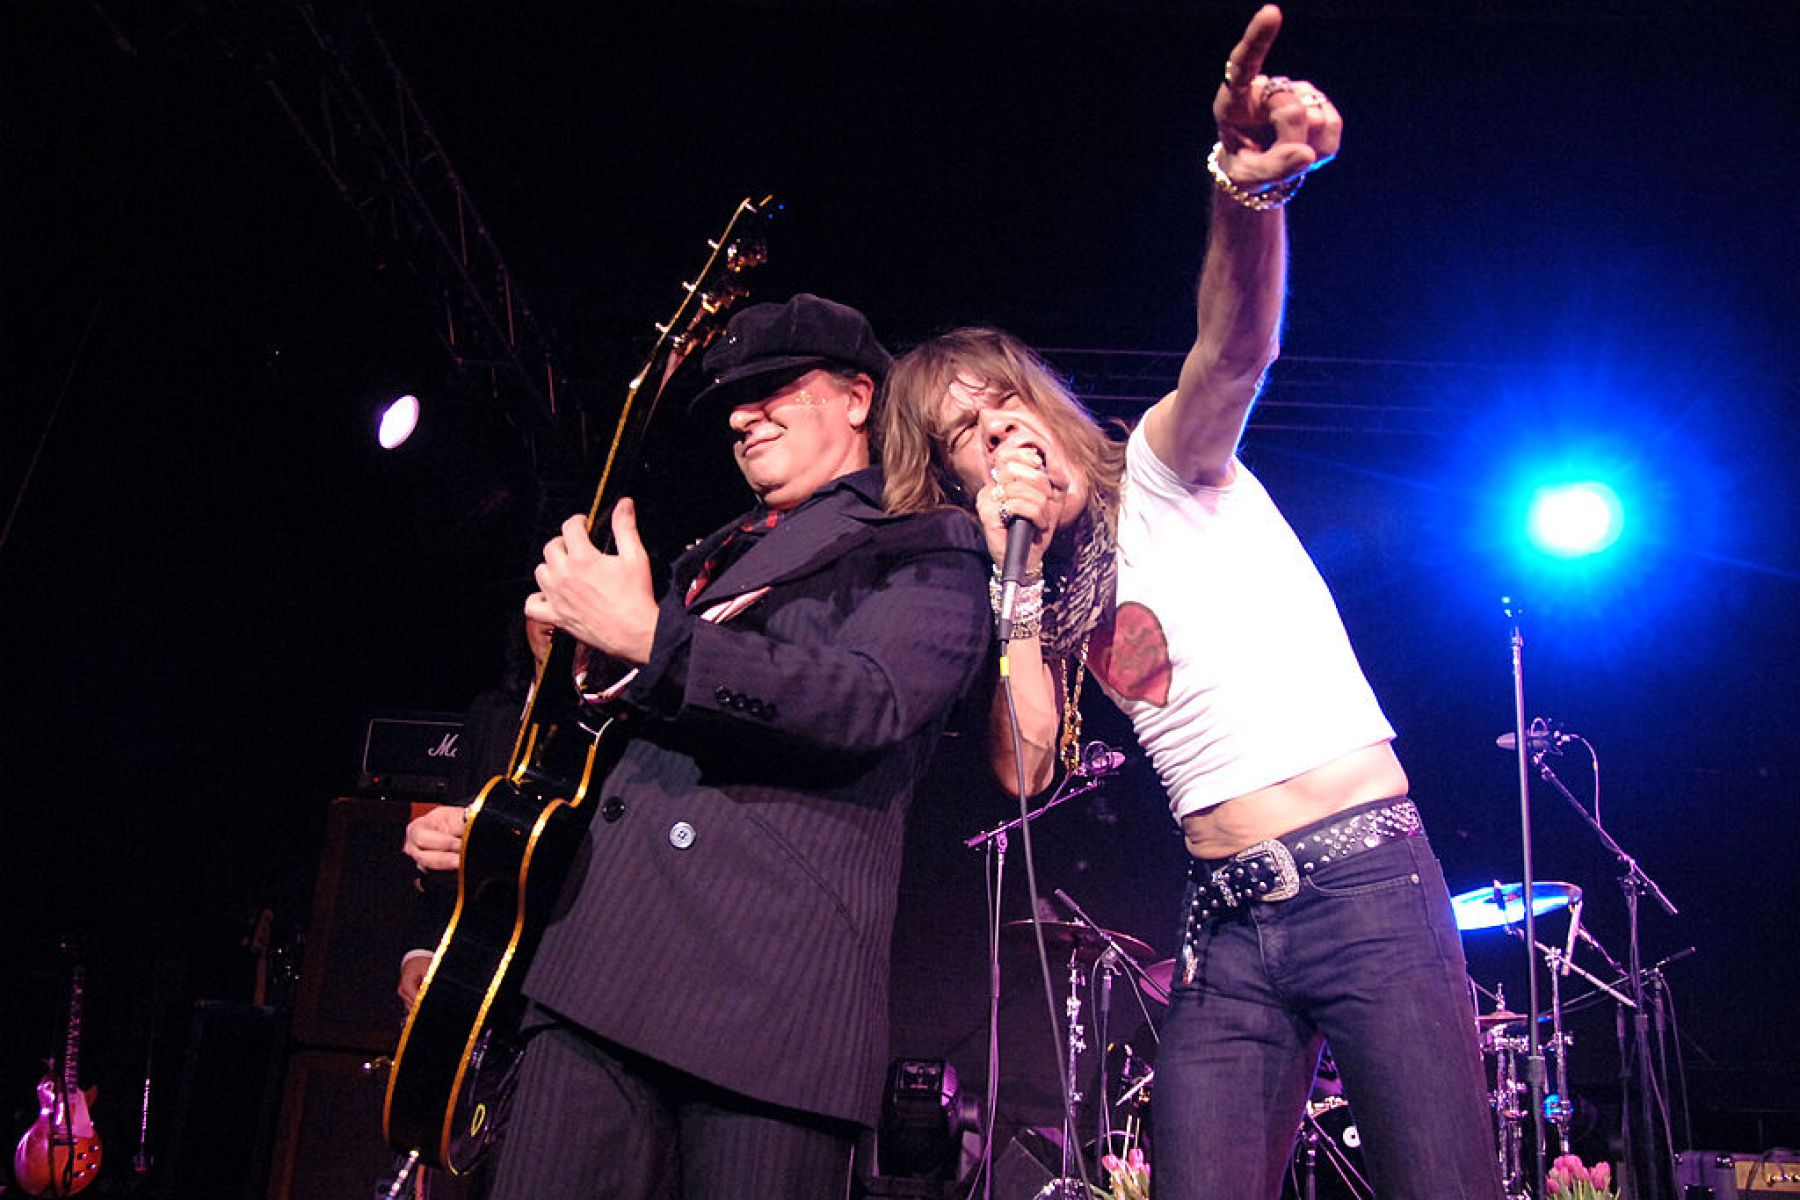 Sylvain Sylvain and David Johansen of the New York Dolls (Photo by Dimitrios Kambouris/WireImage)